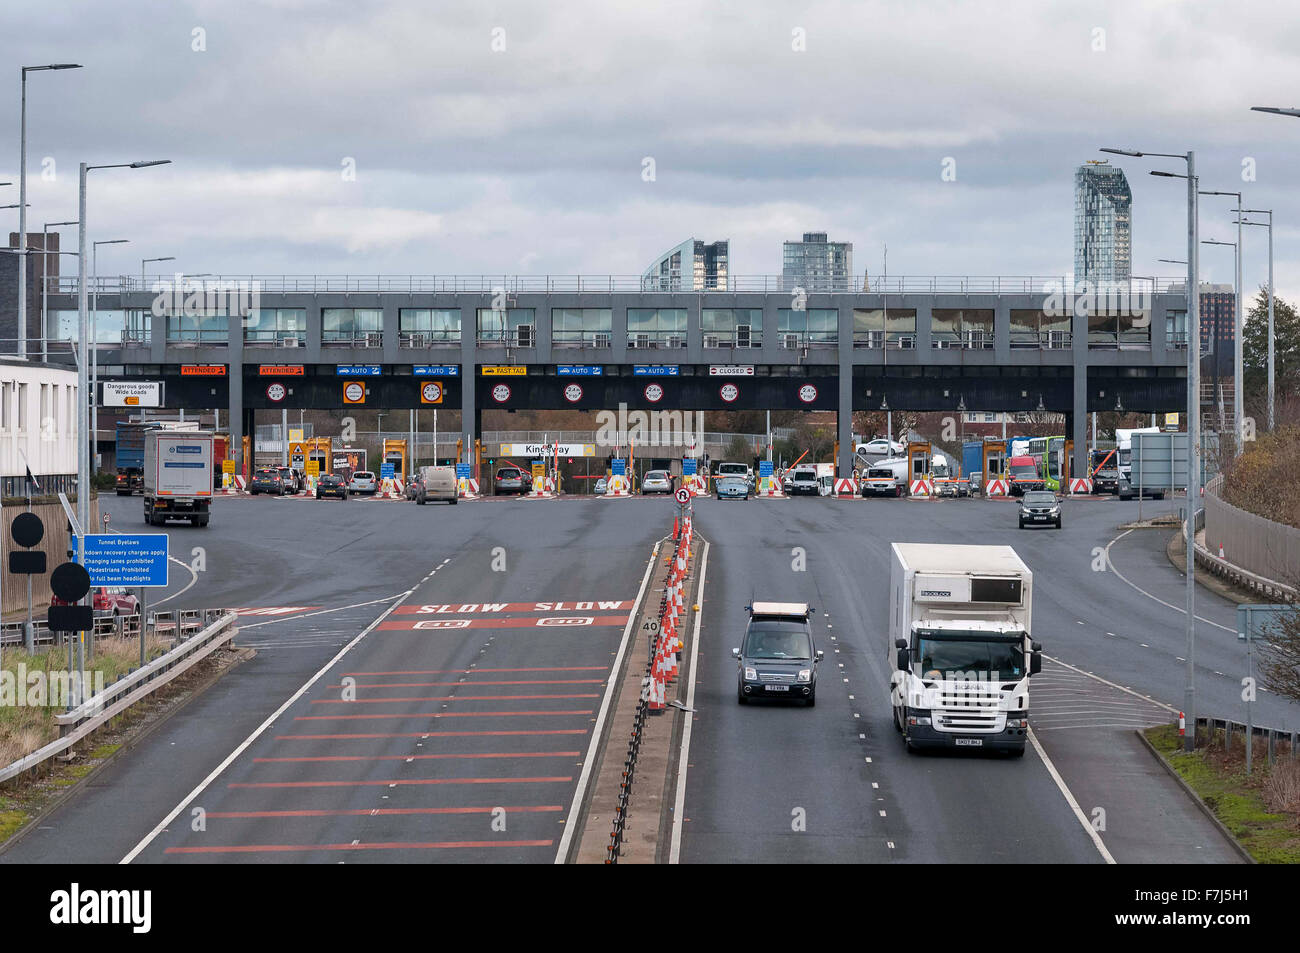 The toll booths on the Kingsway tunnel under the river Mersey at Wallasey. - Stock Image